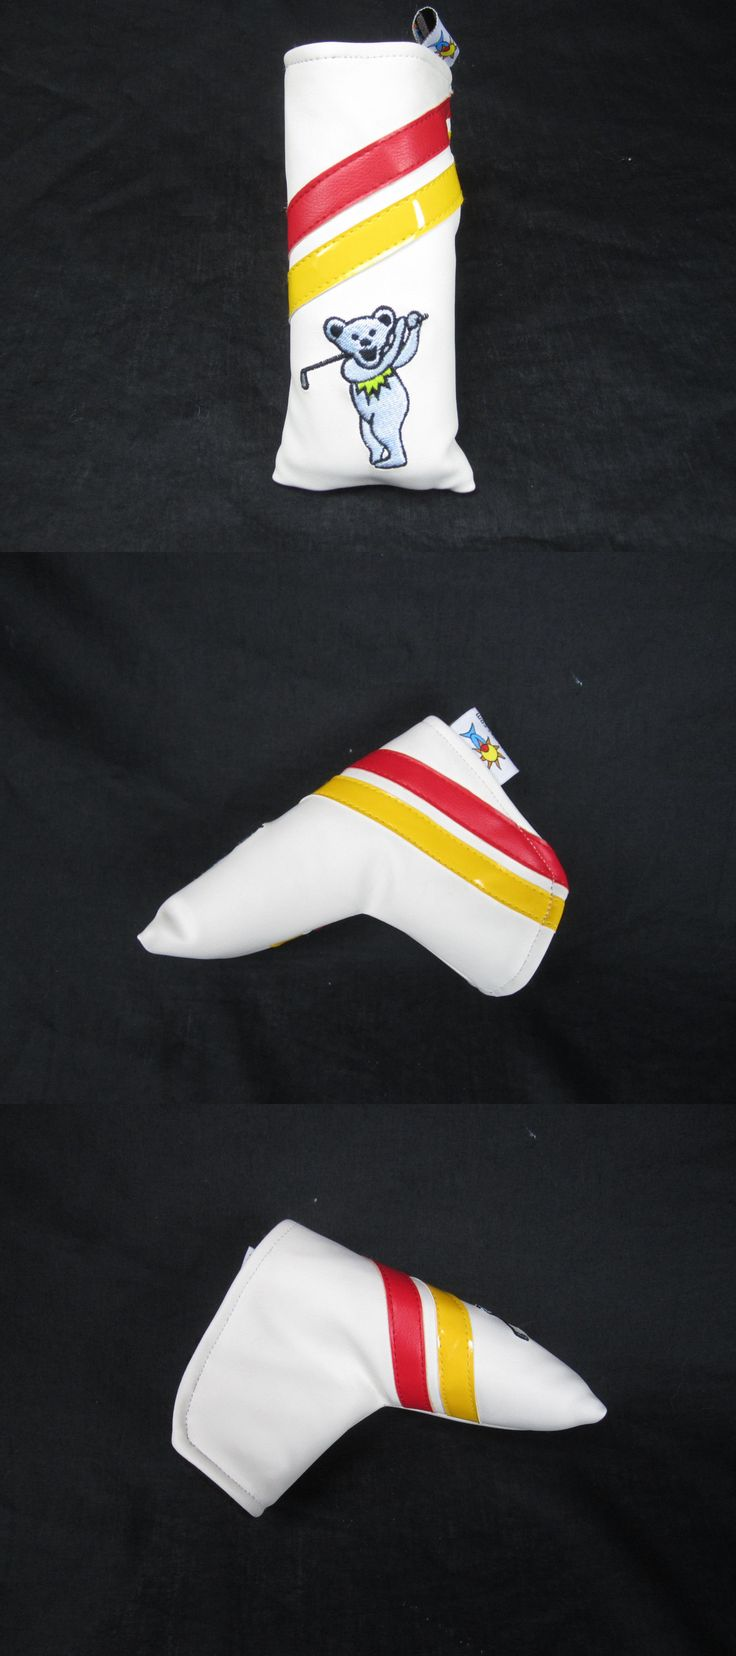 Club Head Covers 18930: Sunfish Leather Blade Putter Golf Headcover - Grateful Dead Dancing Bears -> BUY IT NOW ONLY: $34.99 on eBay!